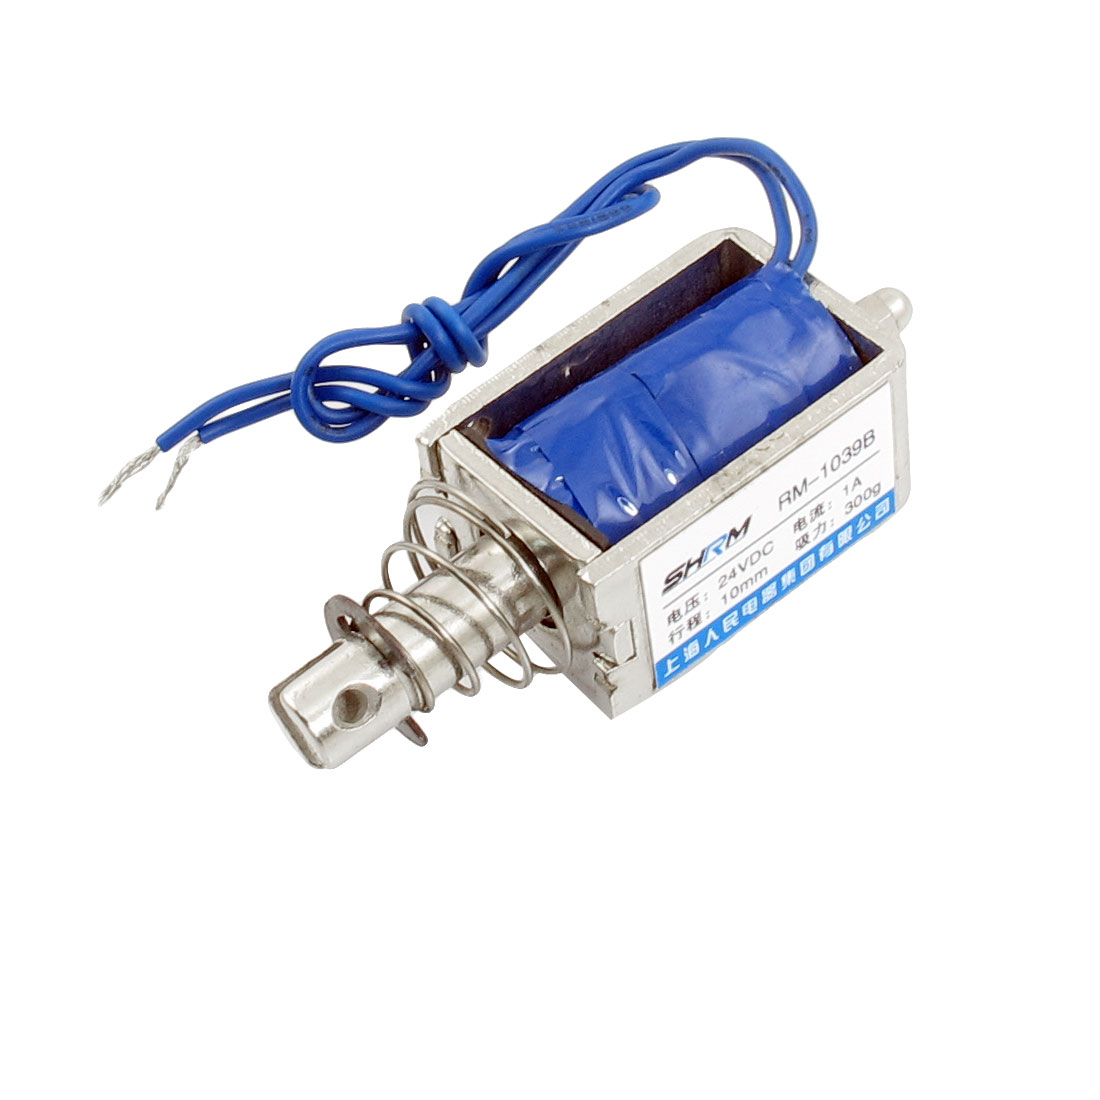 DC 24V 1A 0.3Kg Force 10mm Stroke Push Type Solenoid Electromagnet